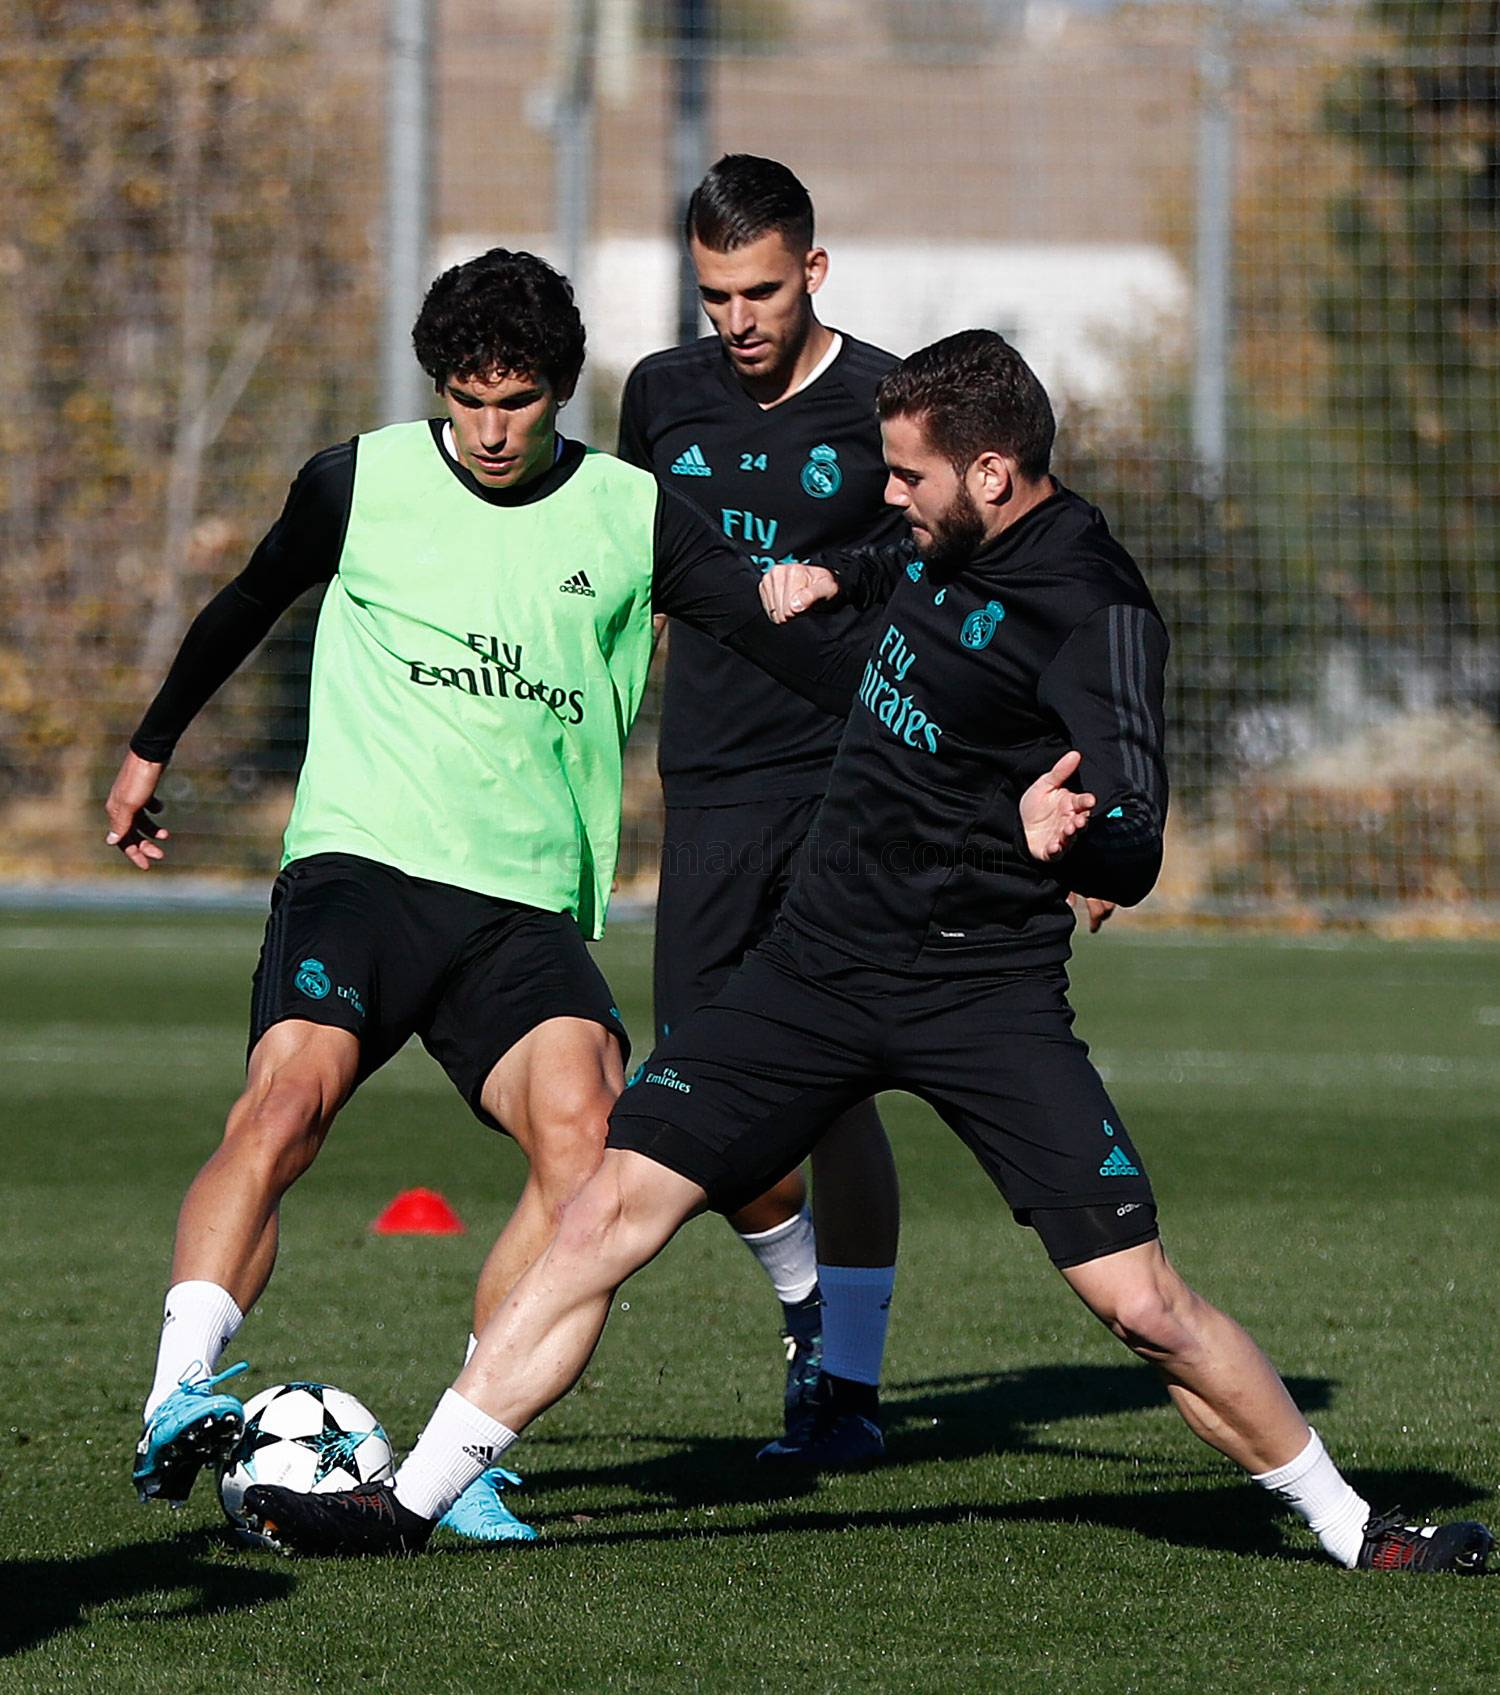 Real Madrid - Entrenamiento del Real Madrid - 19-11-2017